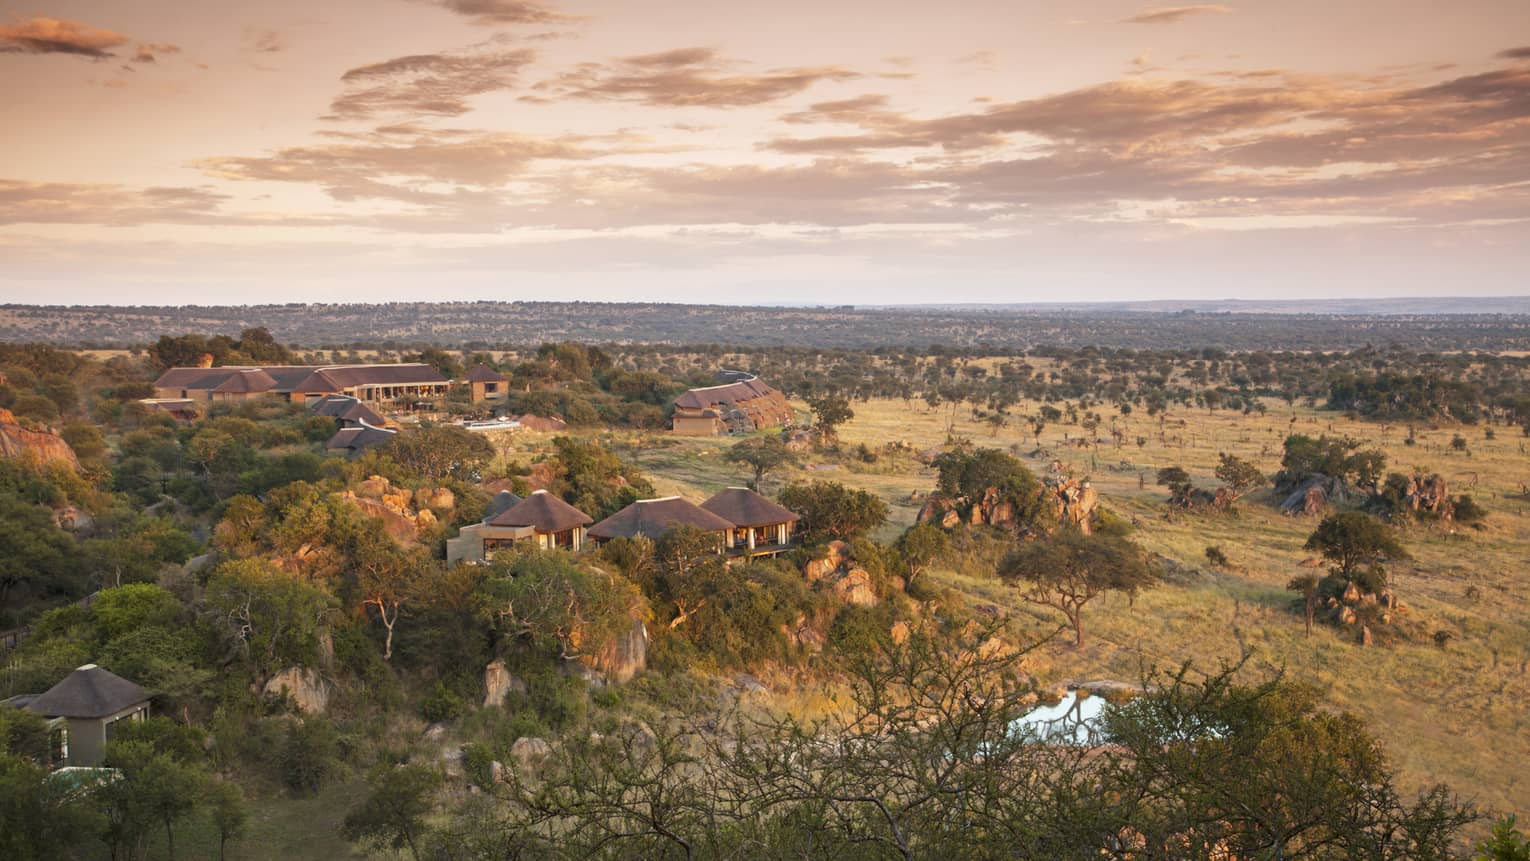 Sunset over villas, plains at Four Seasons Safari Lodge Serengeti